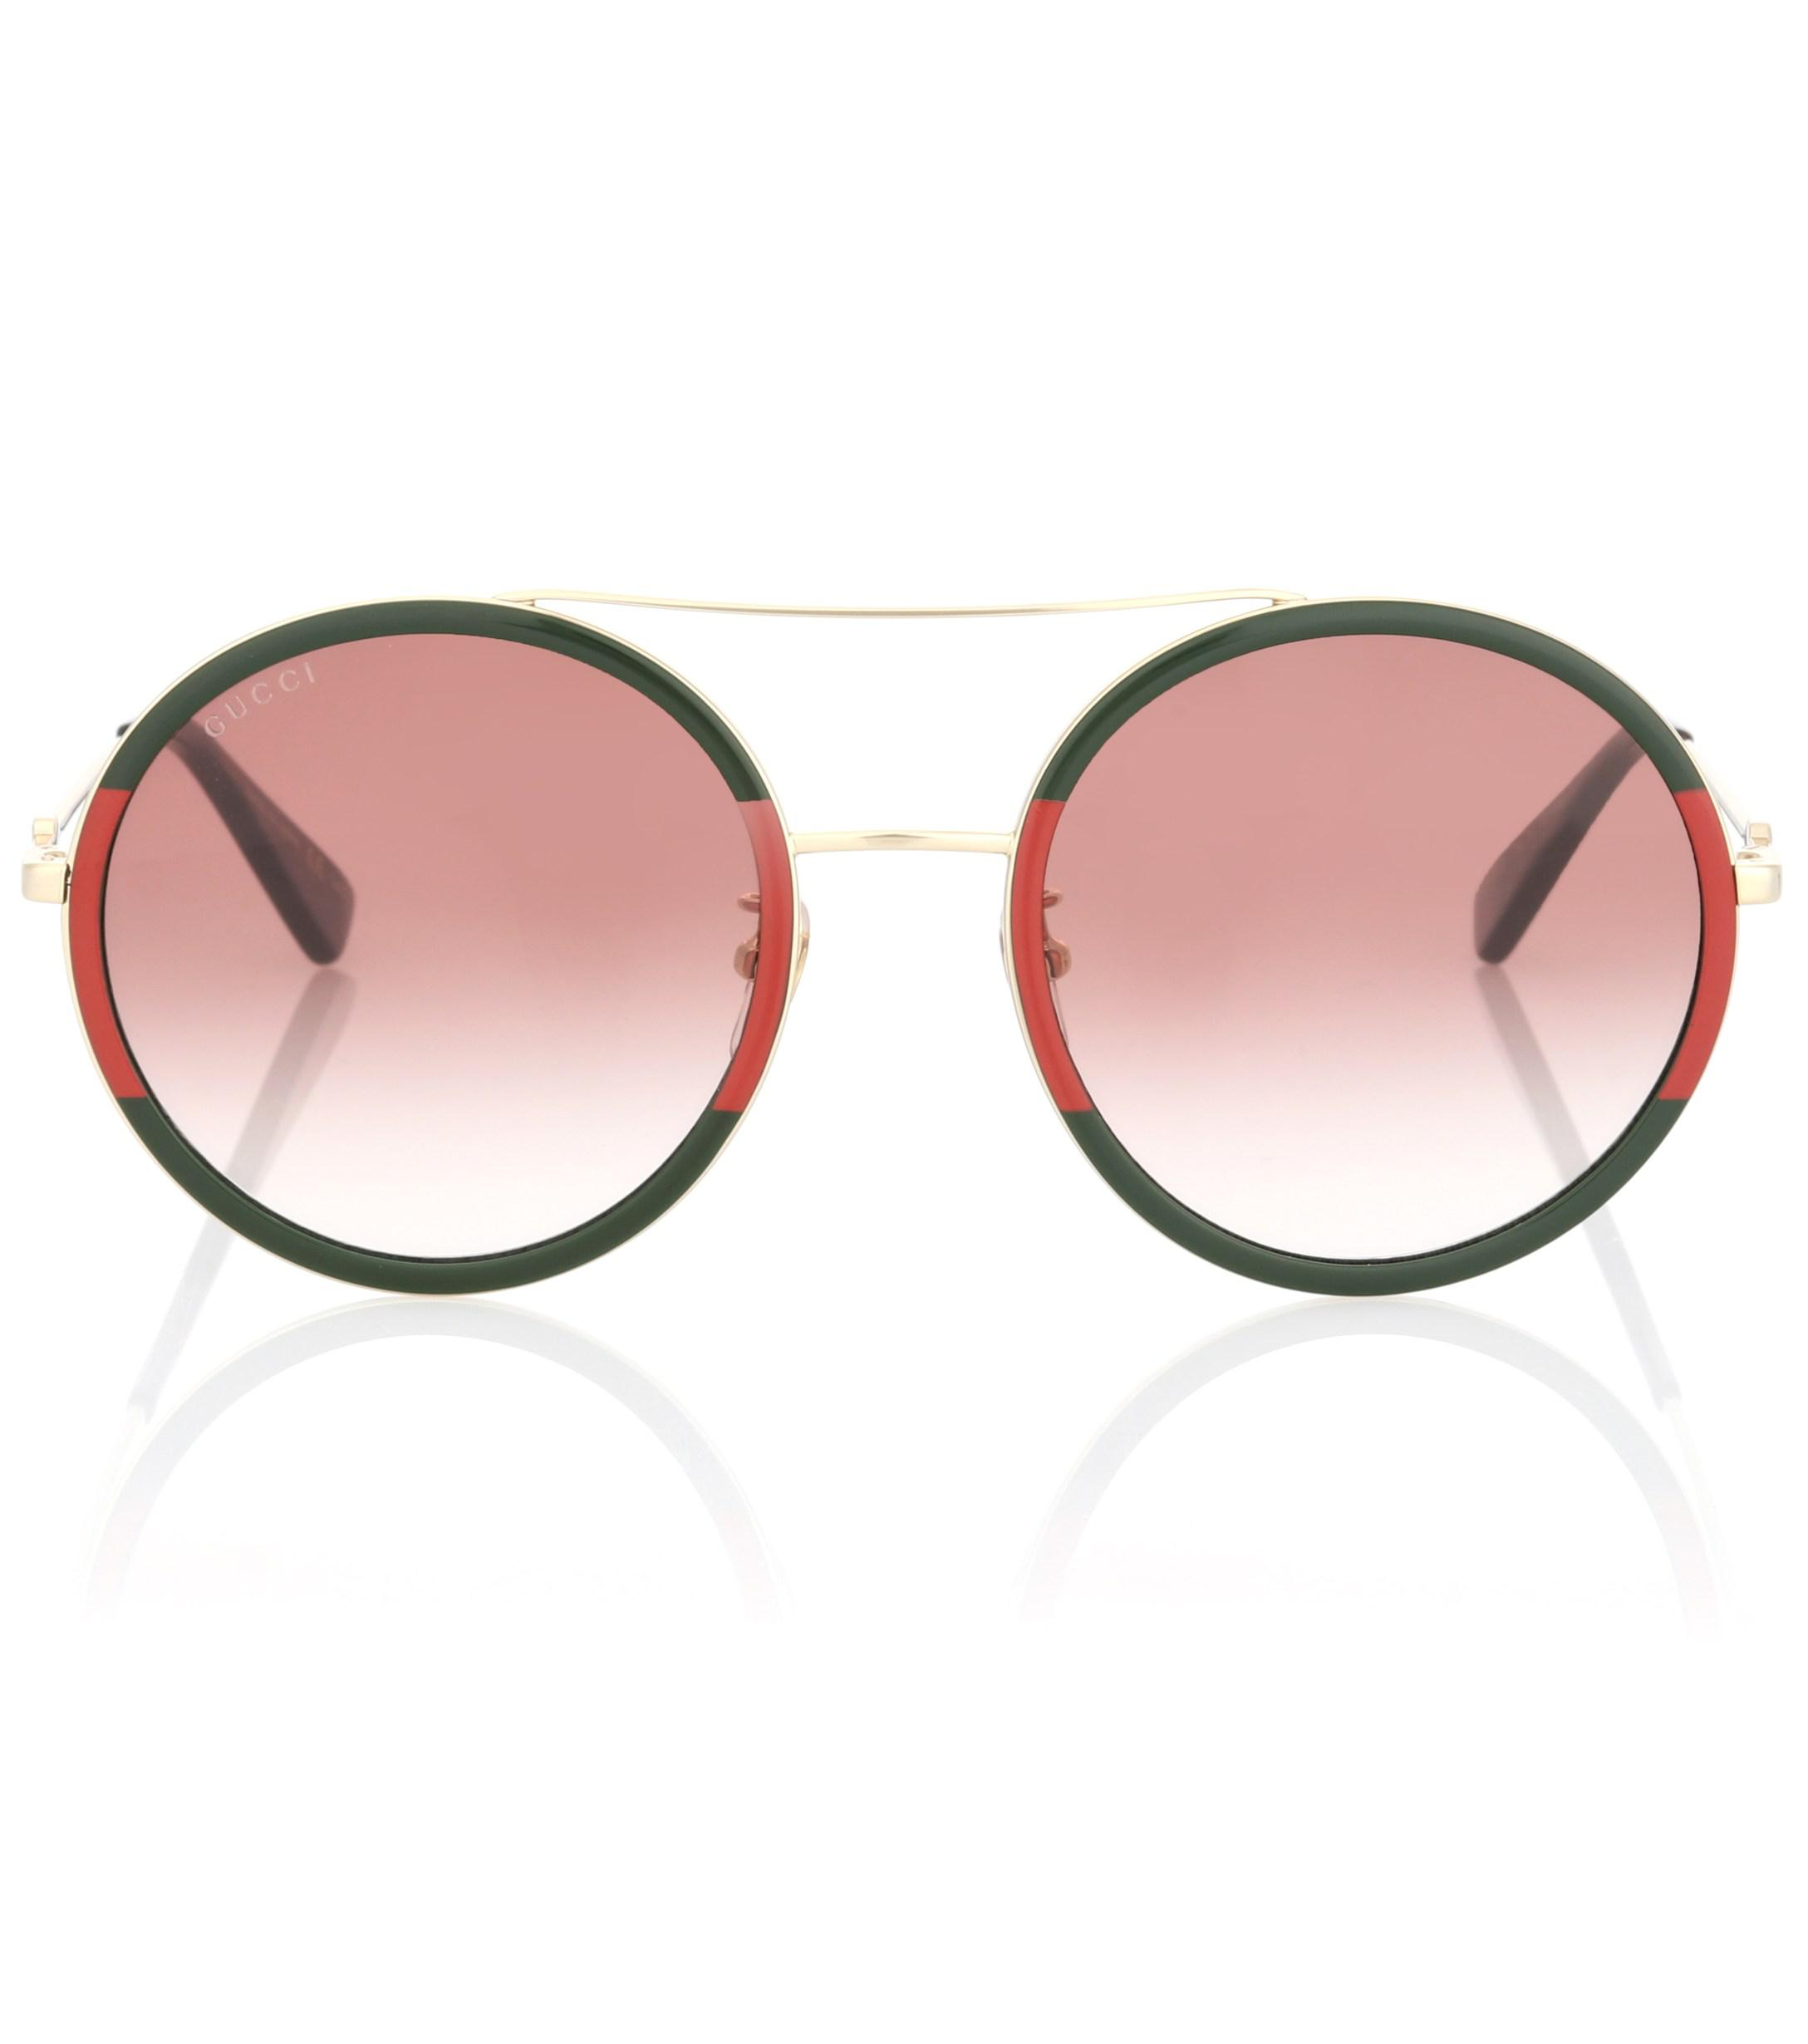 bfdb42aa366 Gucci Exclusive To Mytheresa.com – Round Sunglasses in Green - Lyst